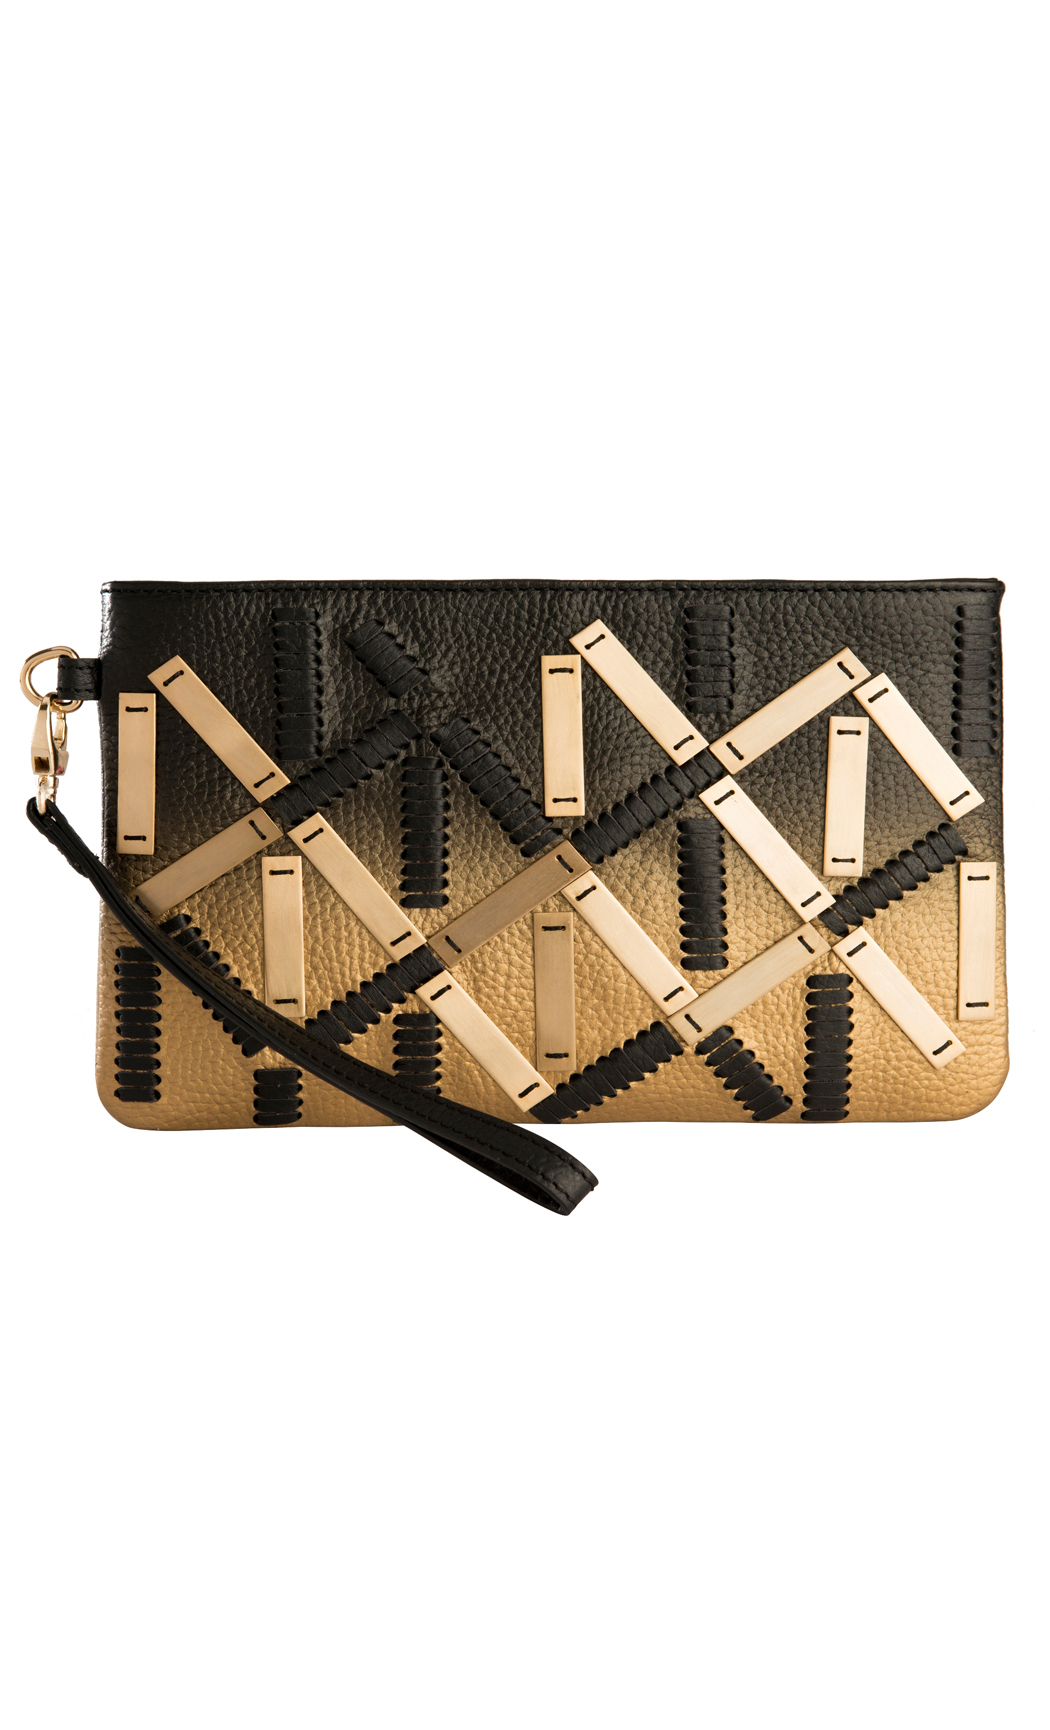 Symphony and Symmetry With Rectangular Fittings in Gold-Black. Buy Online